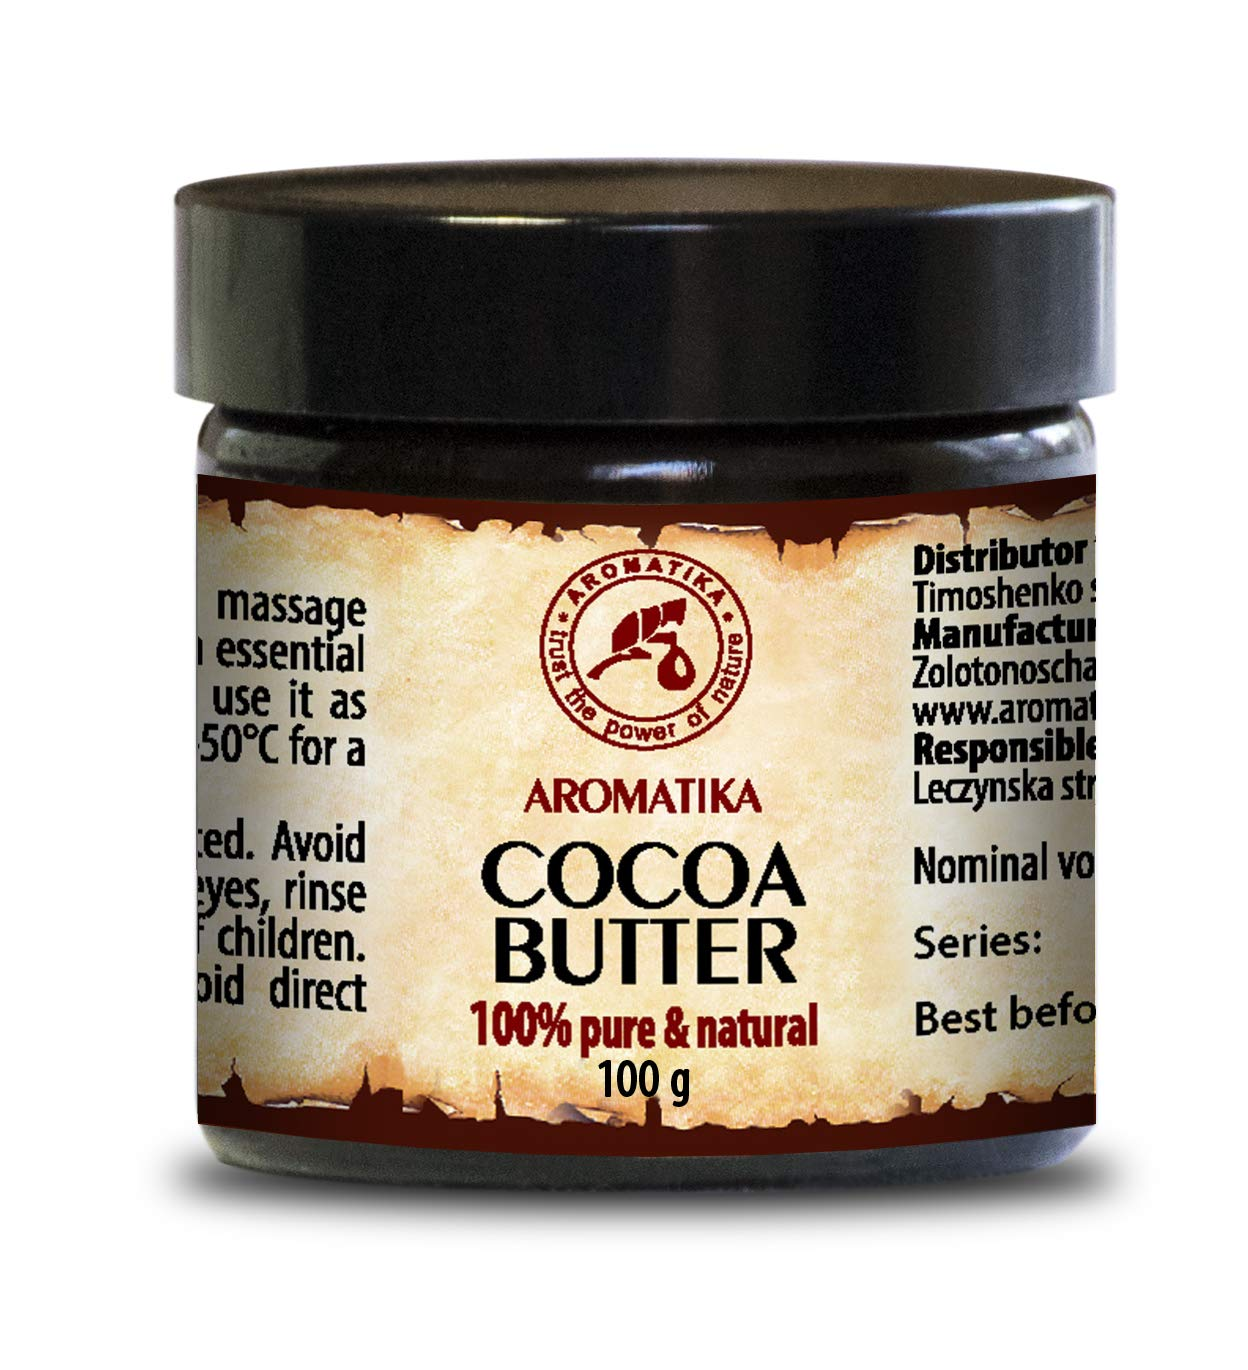 Cocoa Butter Pure & Natural 100gr - Glass Brown Bottle - Burkina Faso - Theobroma Cacao Seed Butter Aromatika